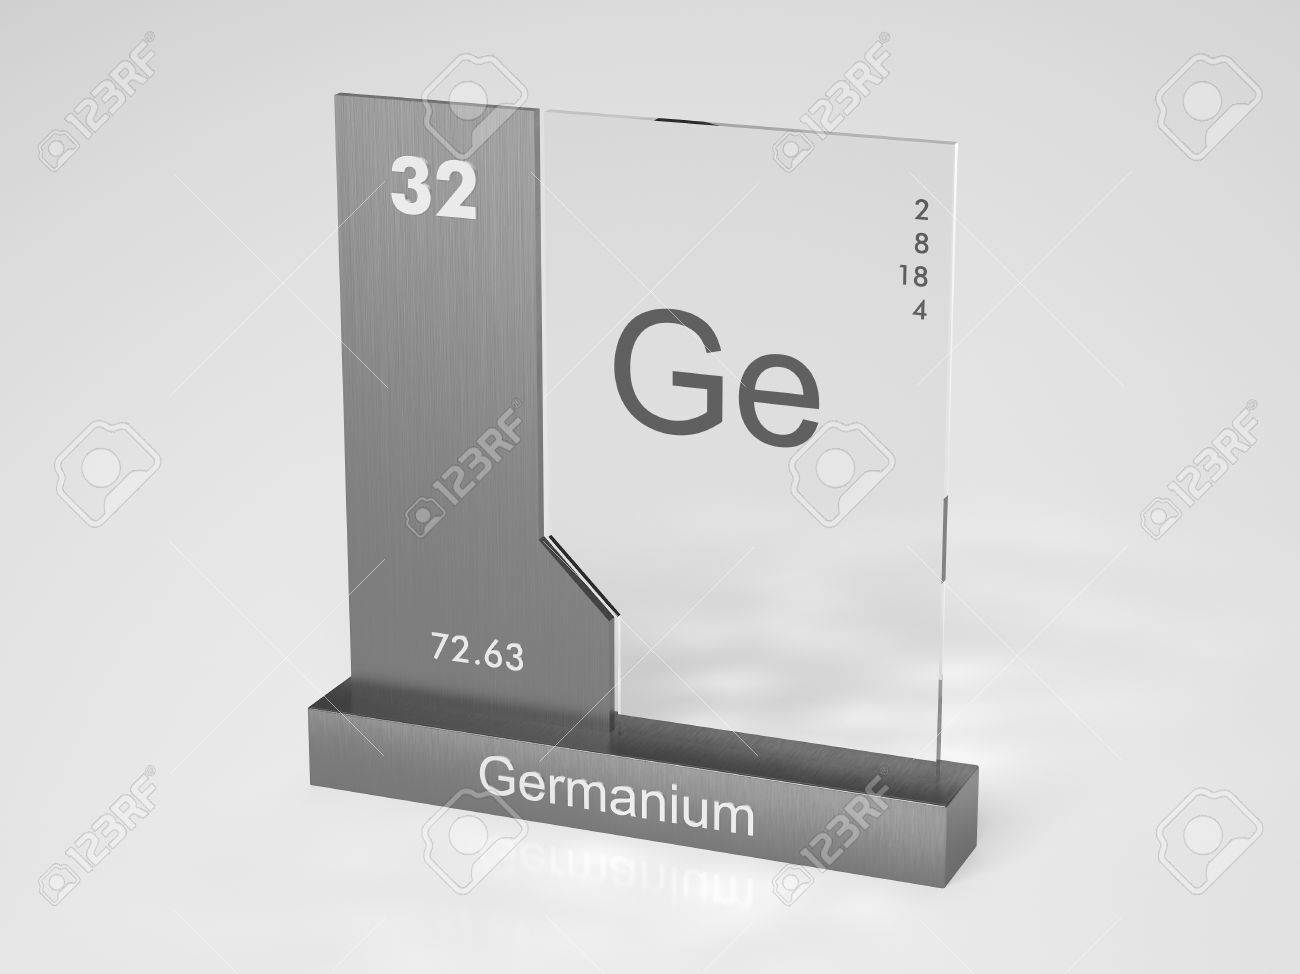 Germanium symbol ge stock photo picture and royalty free image germanium symbol ge stock photo 10230173 biocorpaavc Gallery